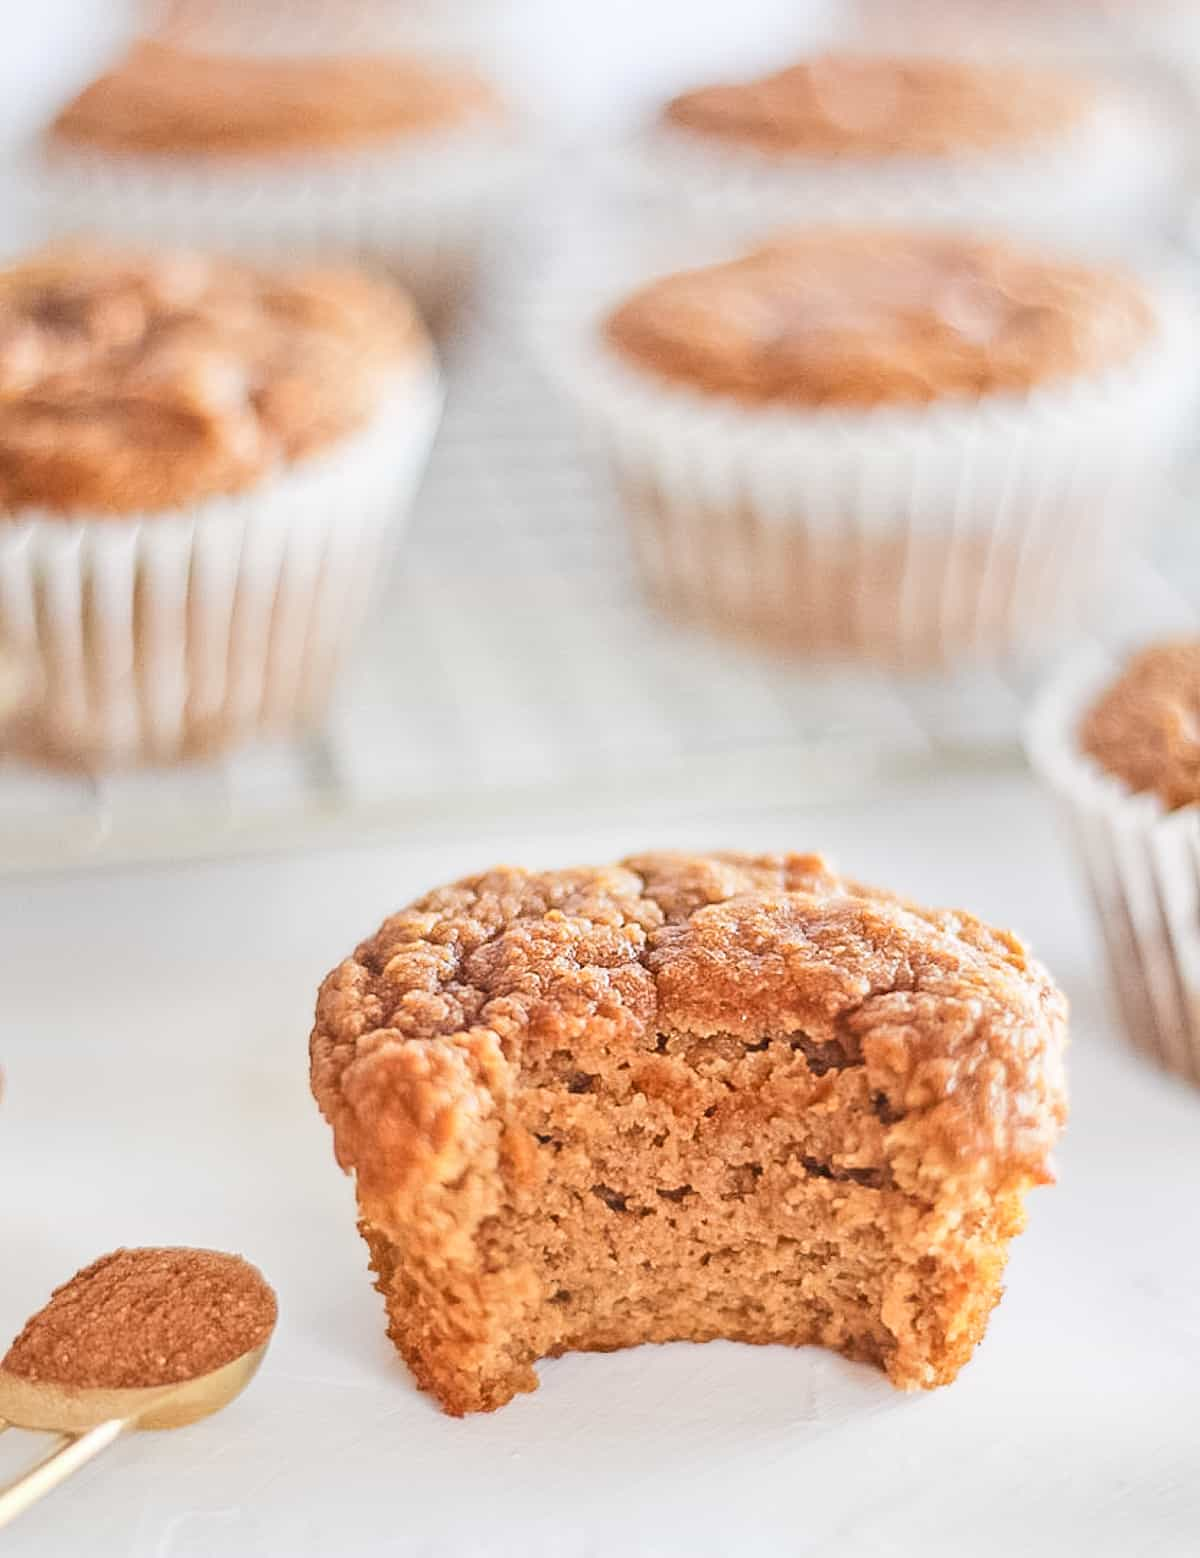 Bite out of a muffin.